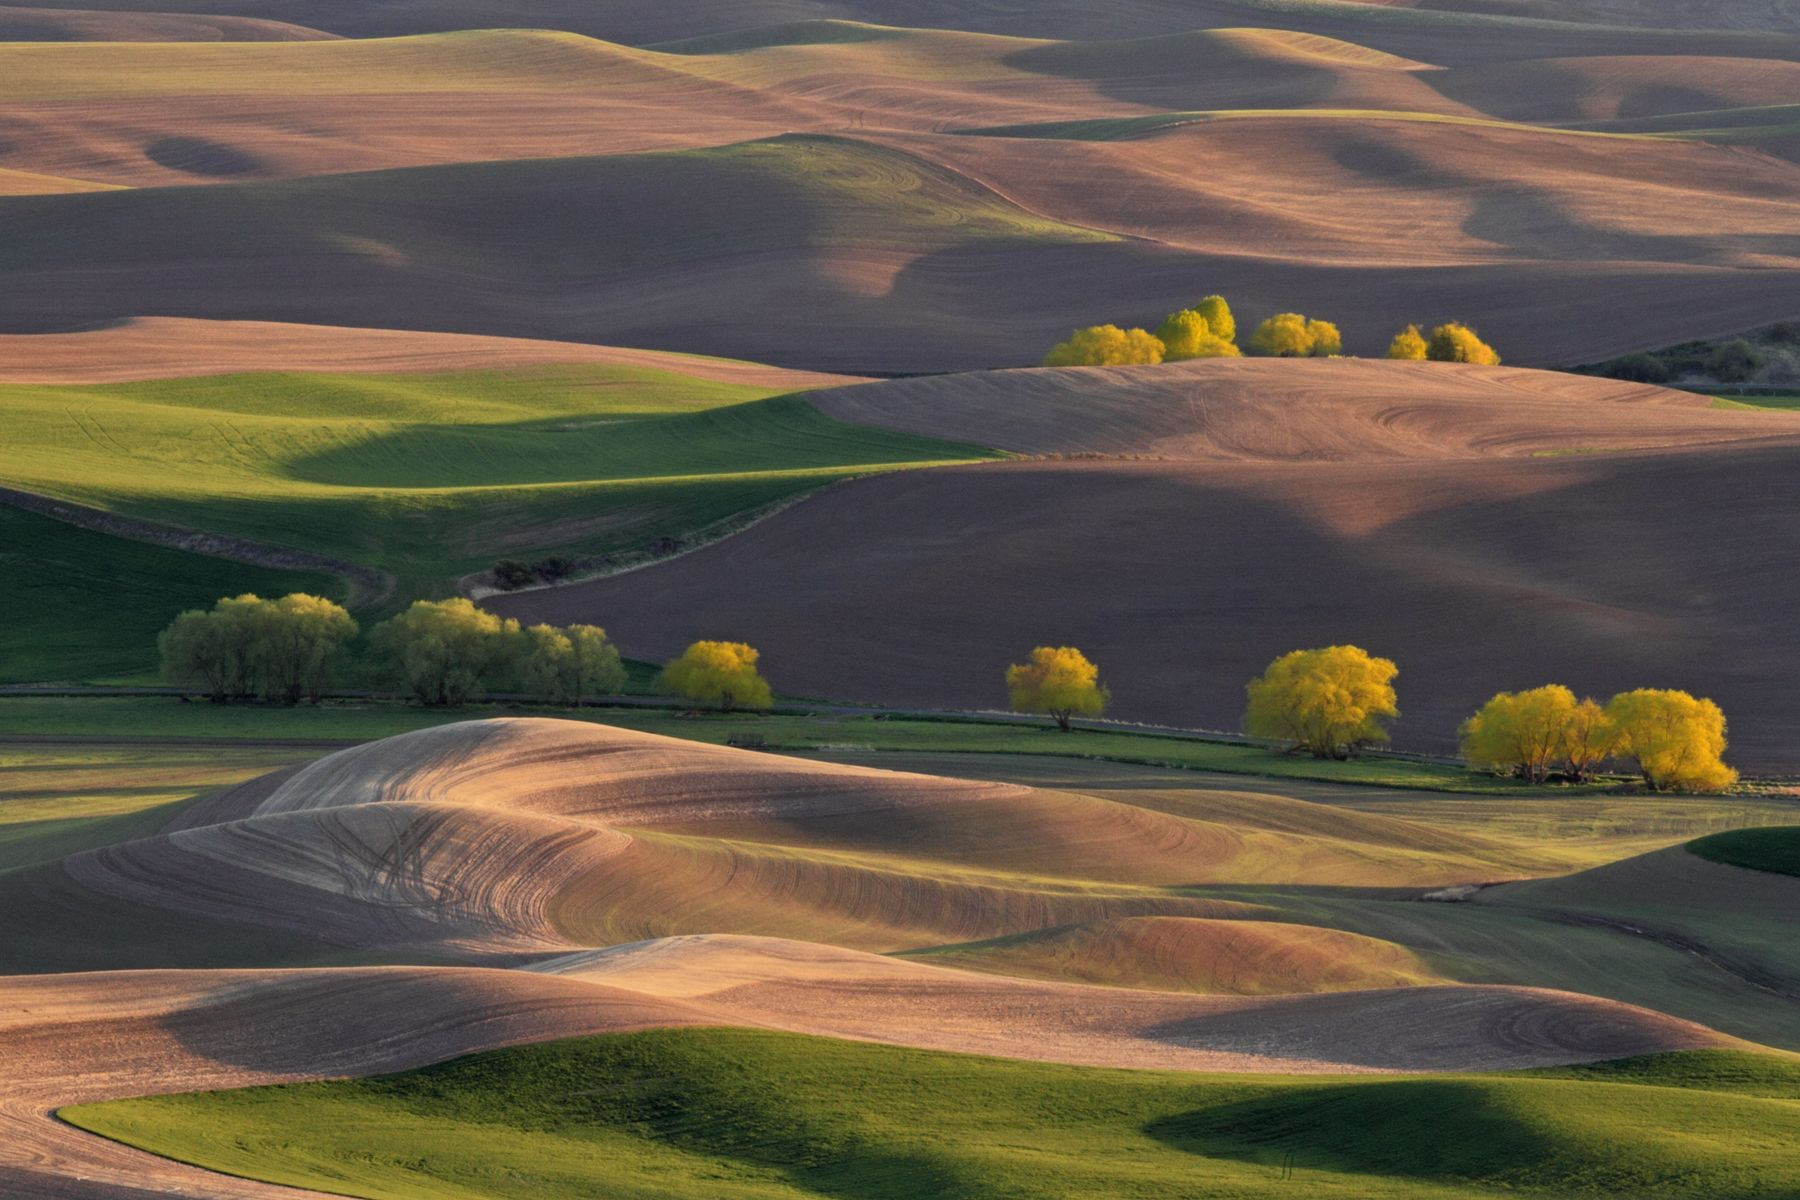 Just another beautiful afternoon view from  Steptoe Butte. © 2015 Pat Schilling